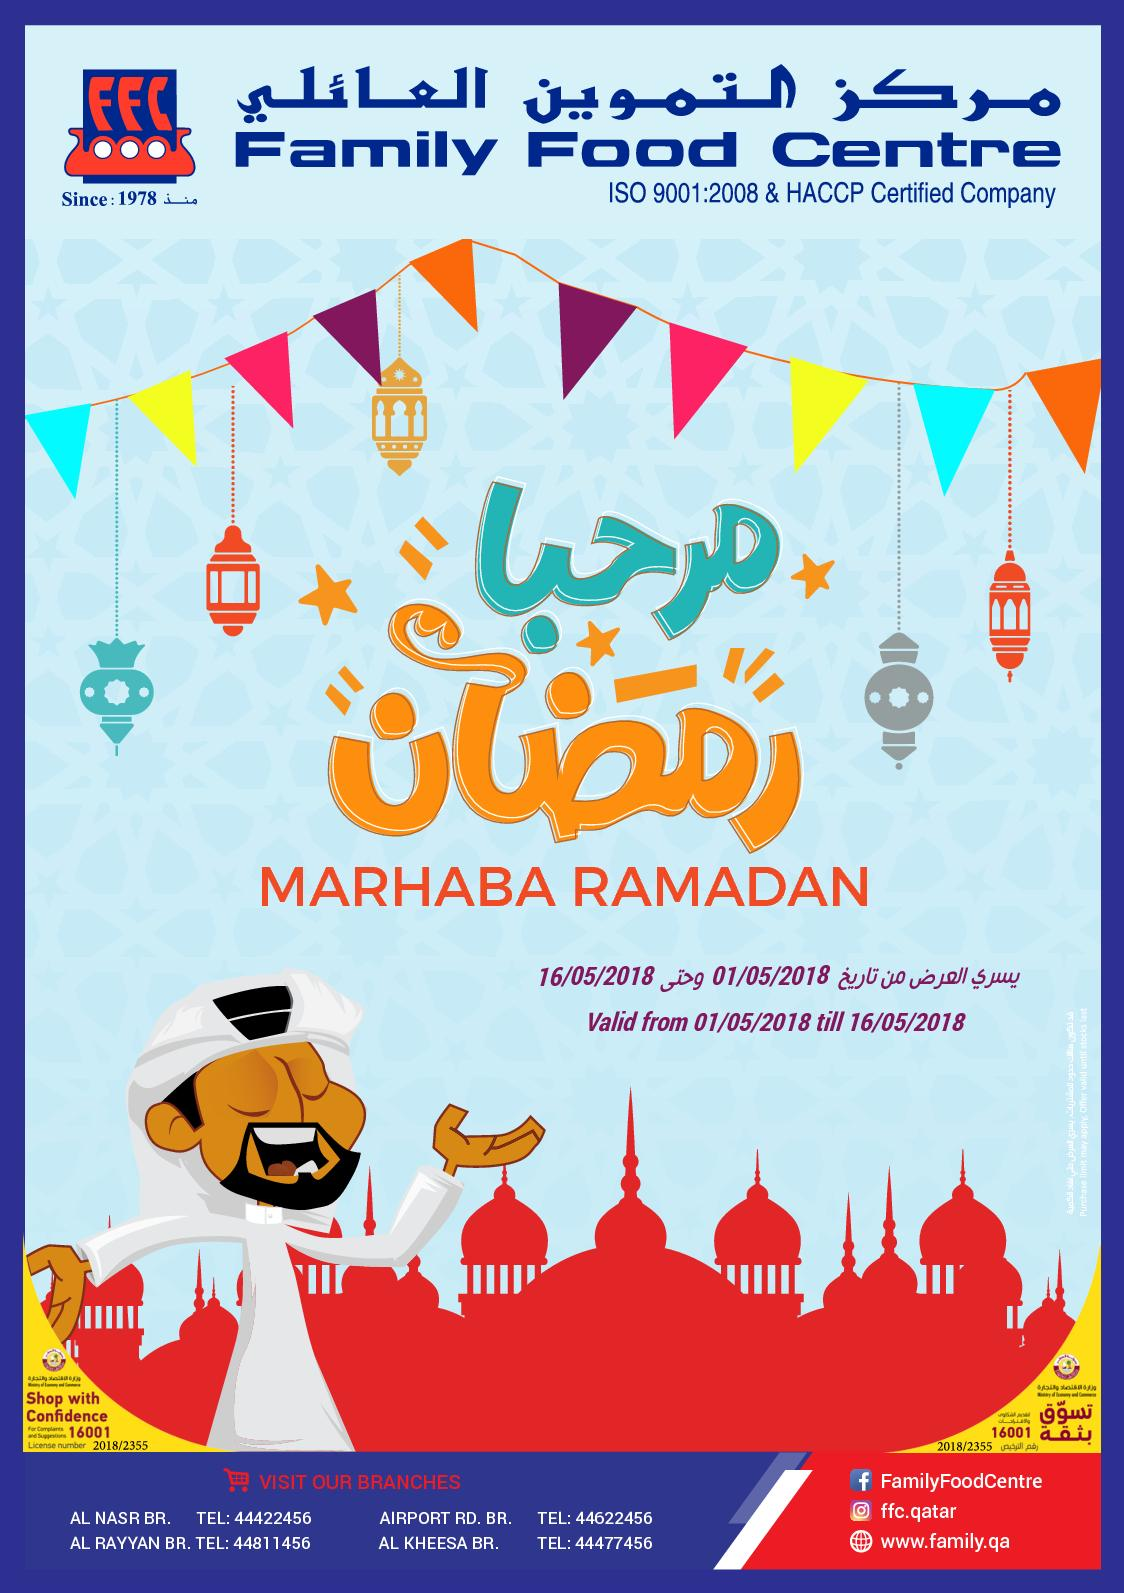 Family Food Center Marhaba Ramadan Offers